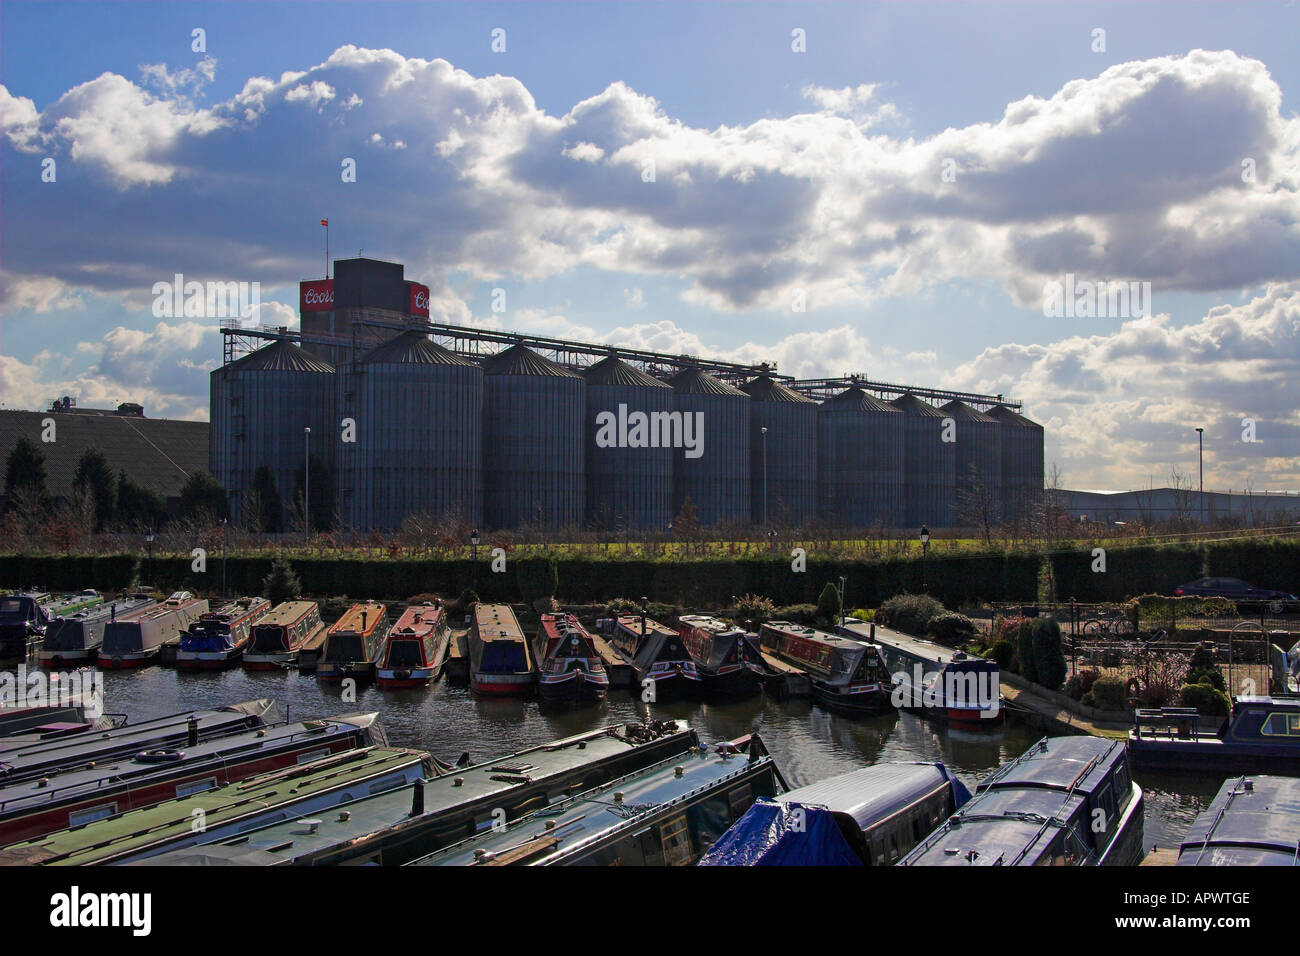 Shobnall Wharf on the Trent and Mersey Canal and the Coors Brewery, Burton upon Trent, Staffordshire, England Stock Photo